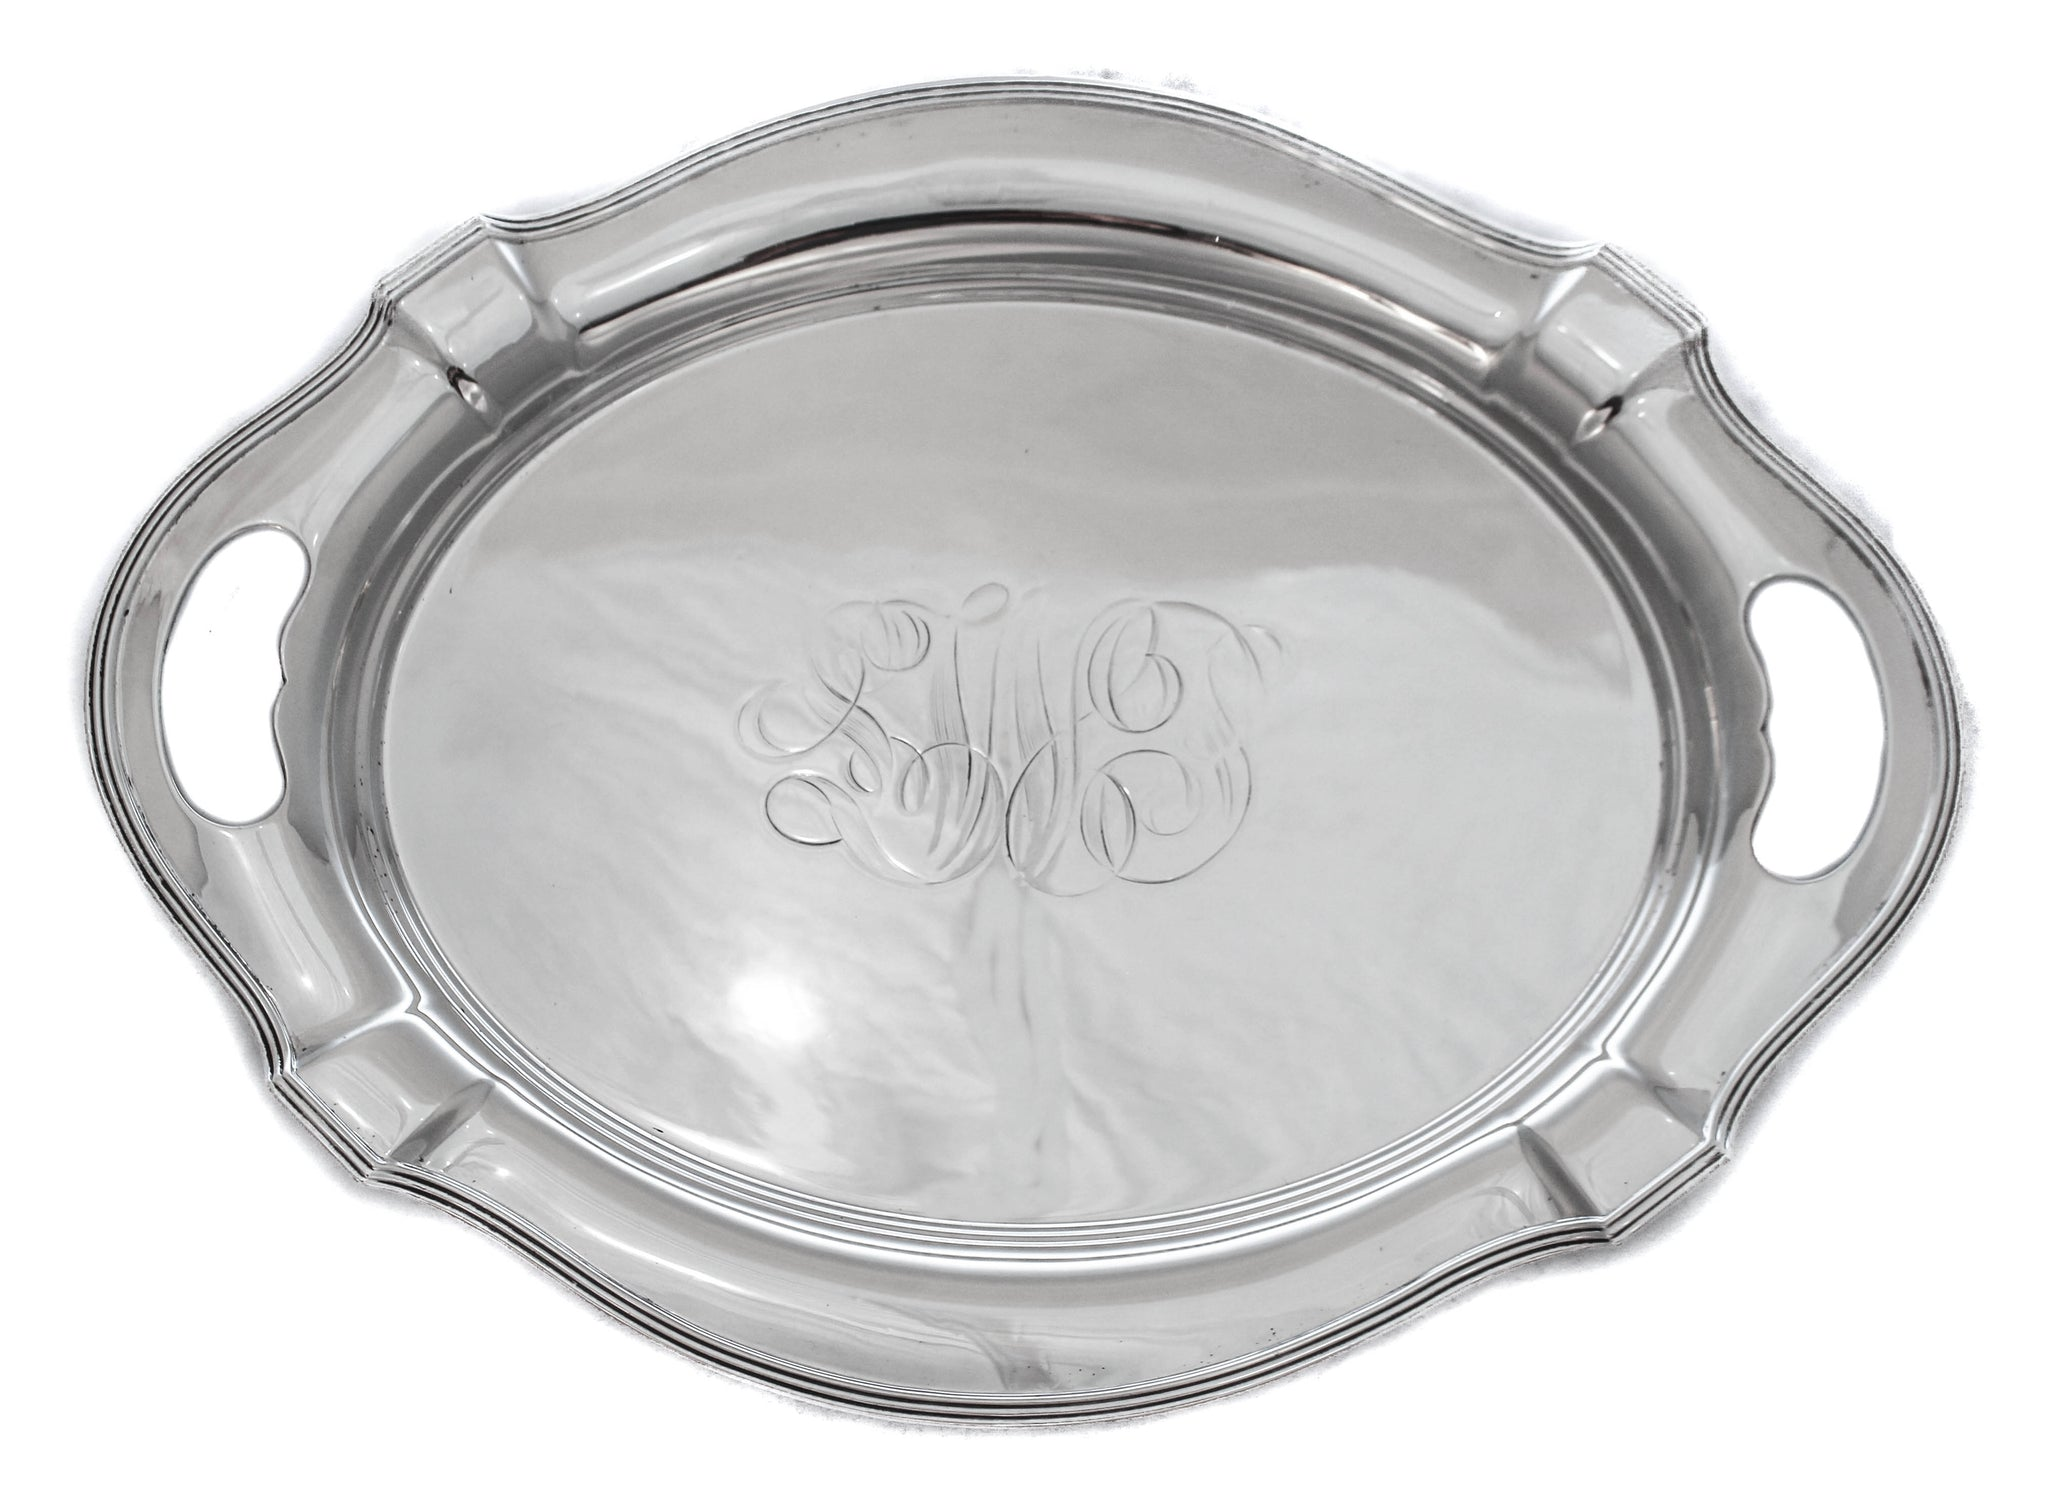 ANTIQUE 925 STERLING SILVER HANDMADE MONOGRAMMED OVAL TRAY WITH CUT OUT HANDLES